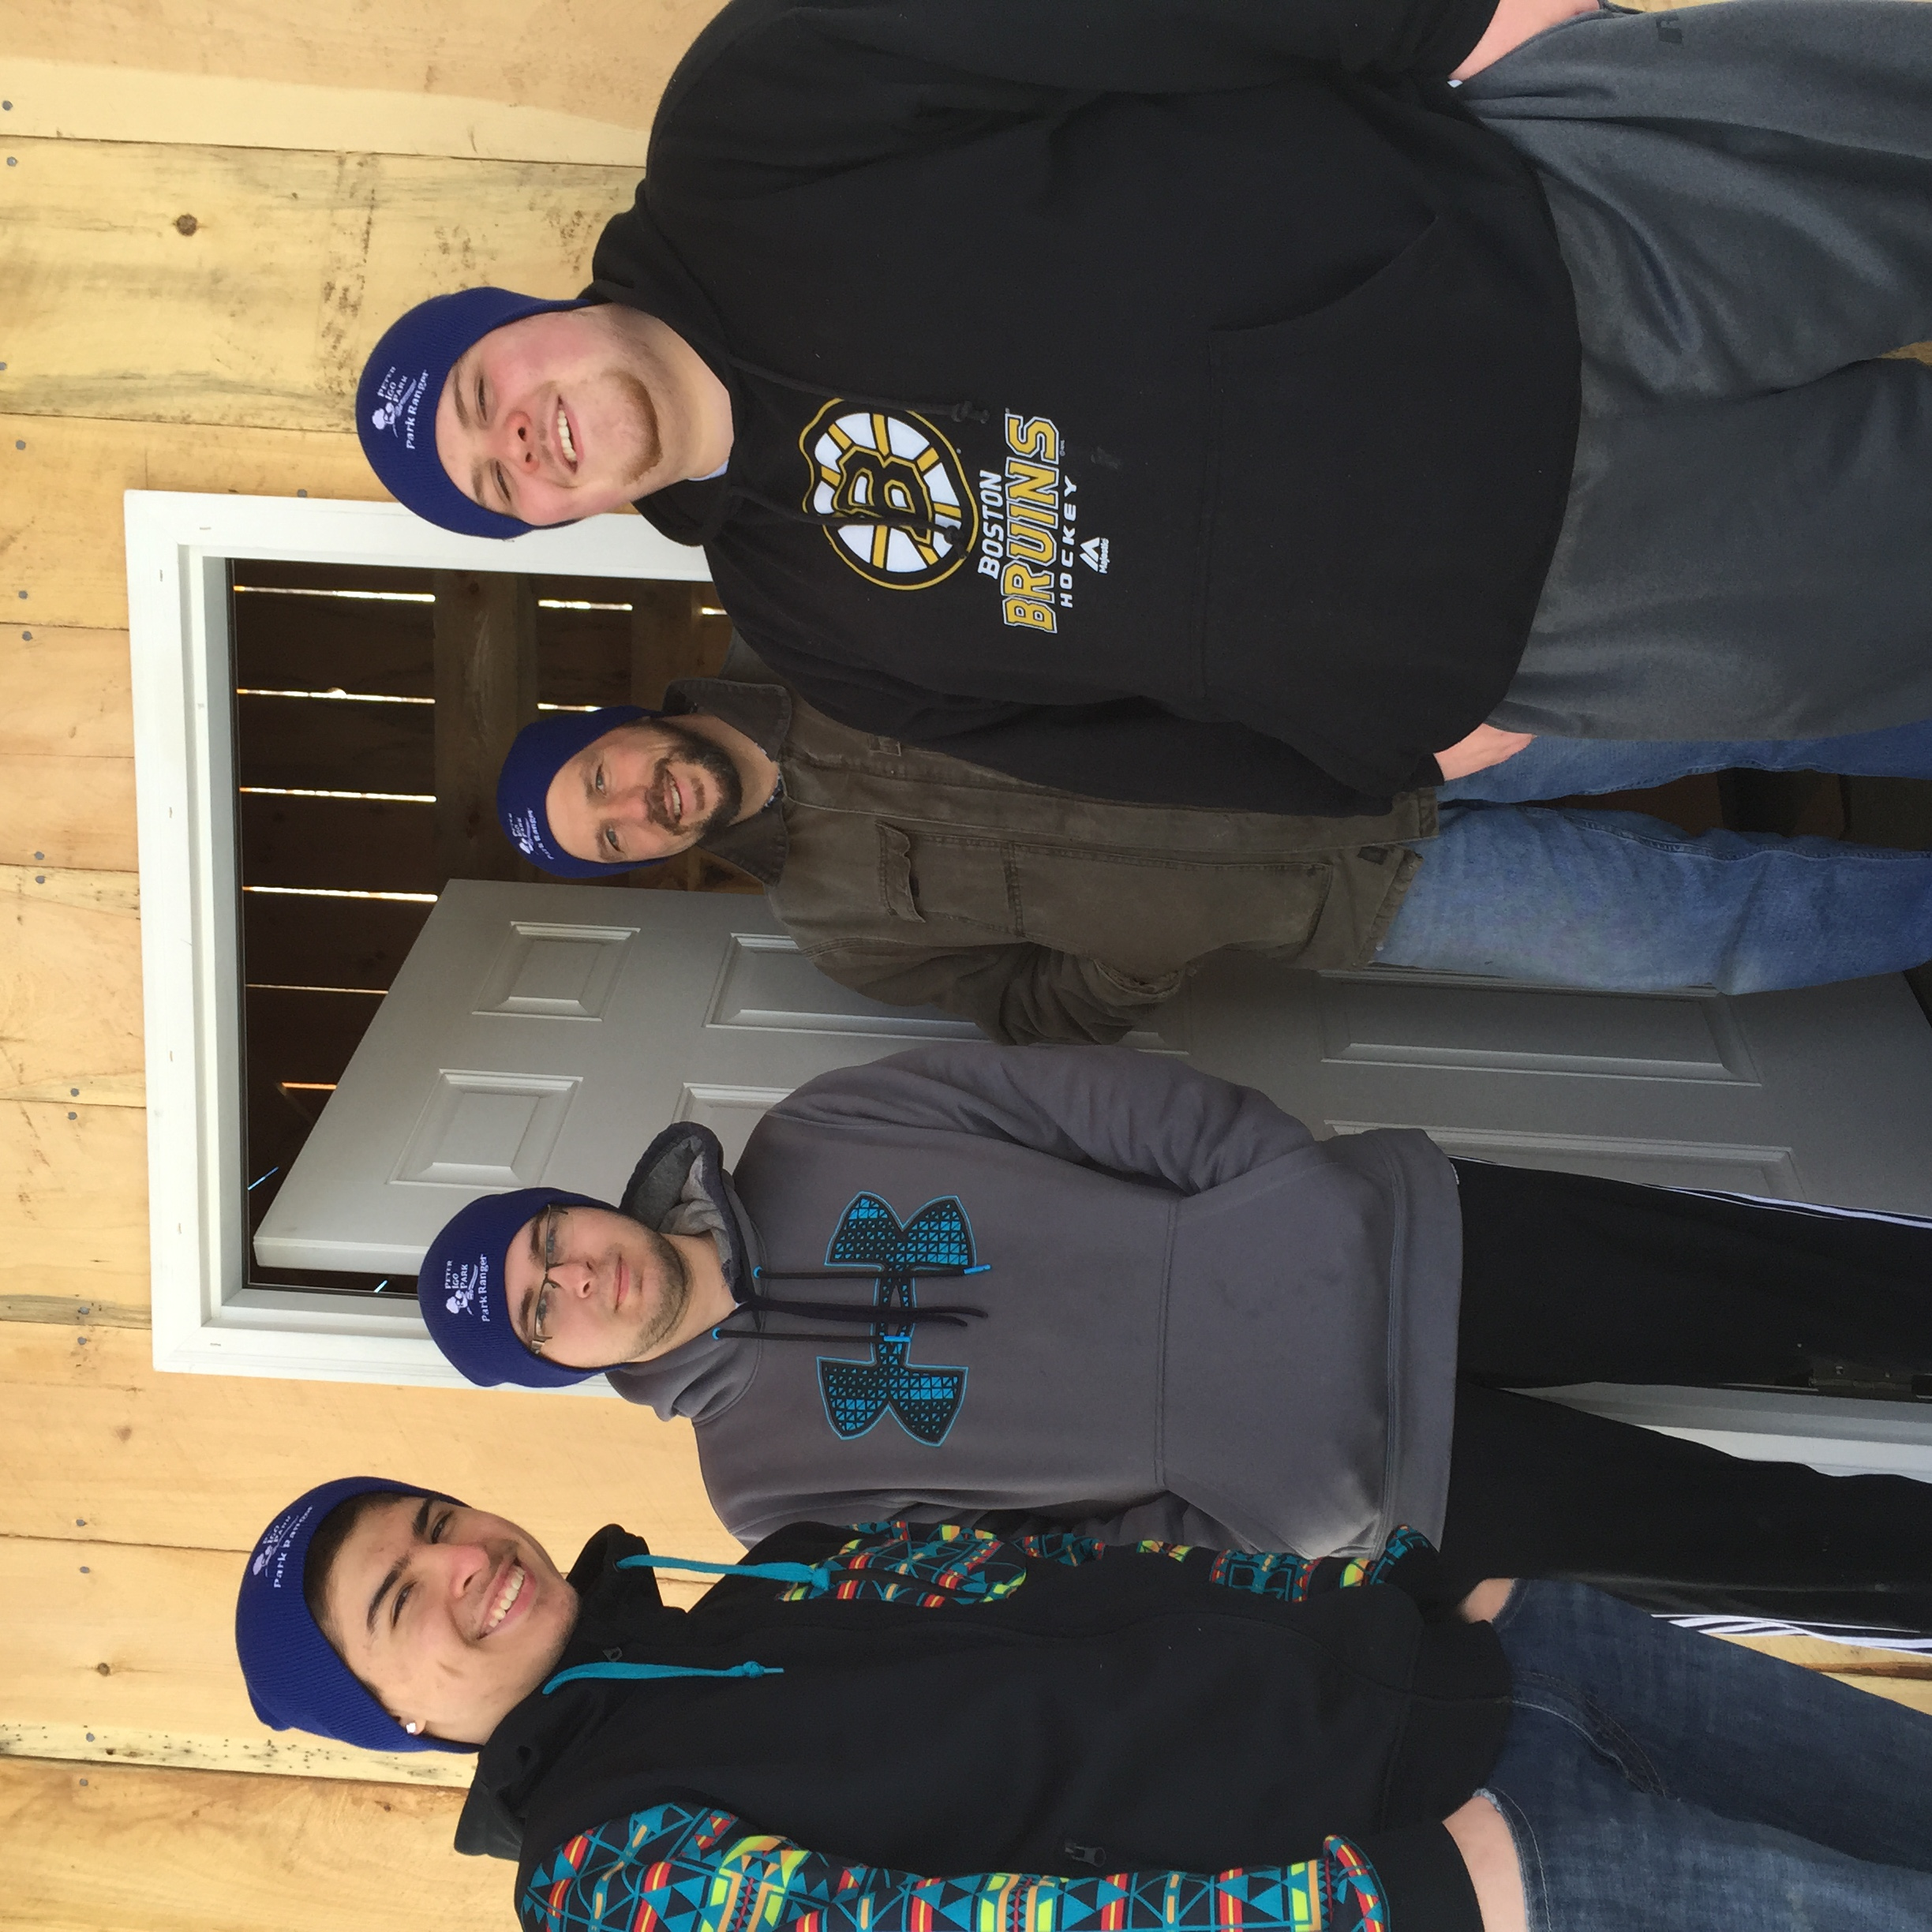 The guys are all styling in their new Peter Igo Ranger beanies!